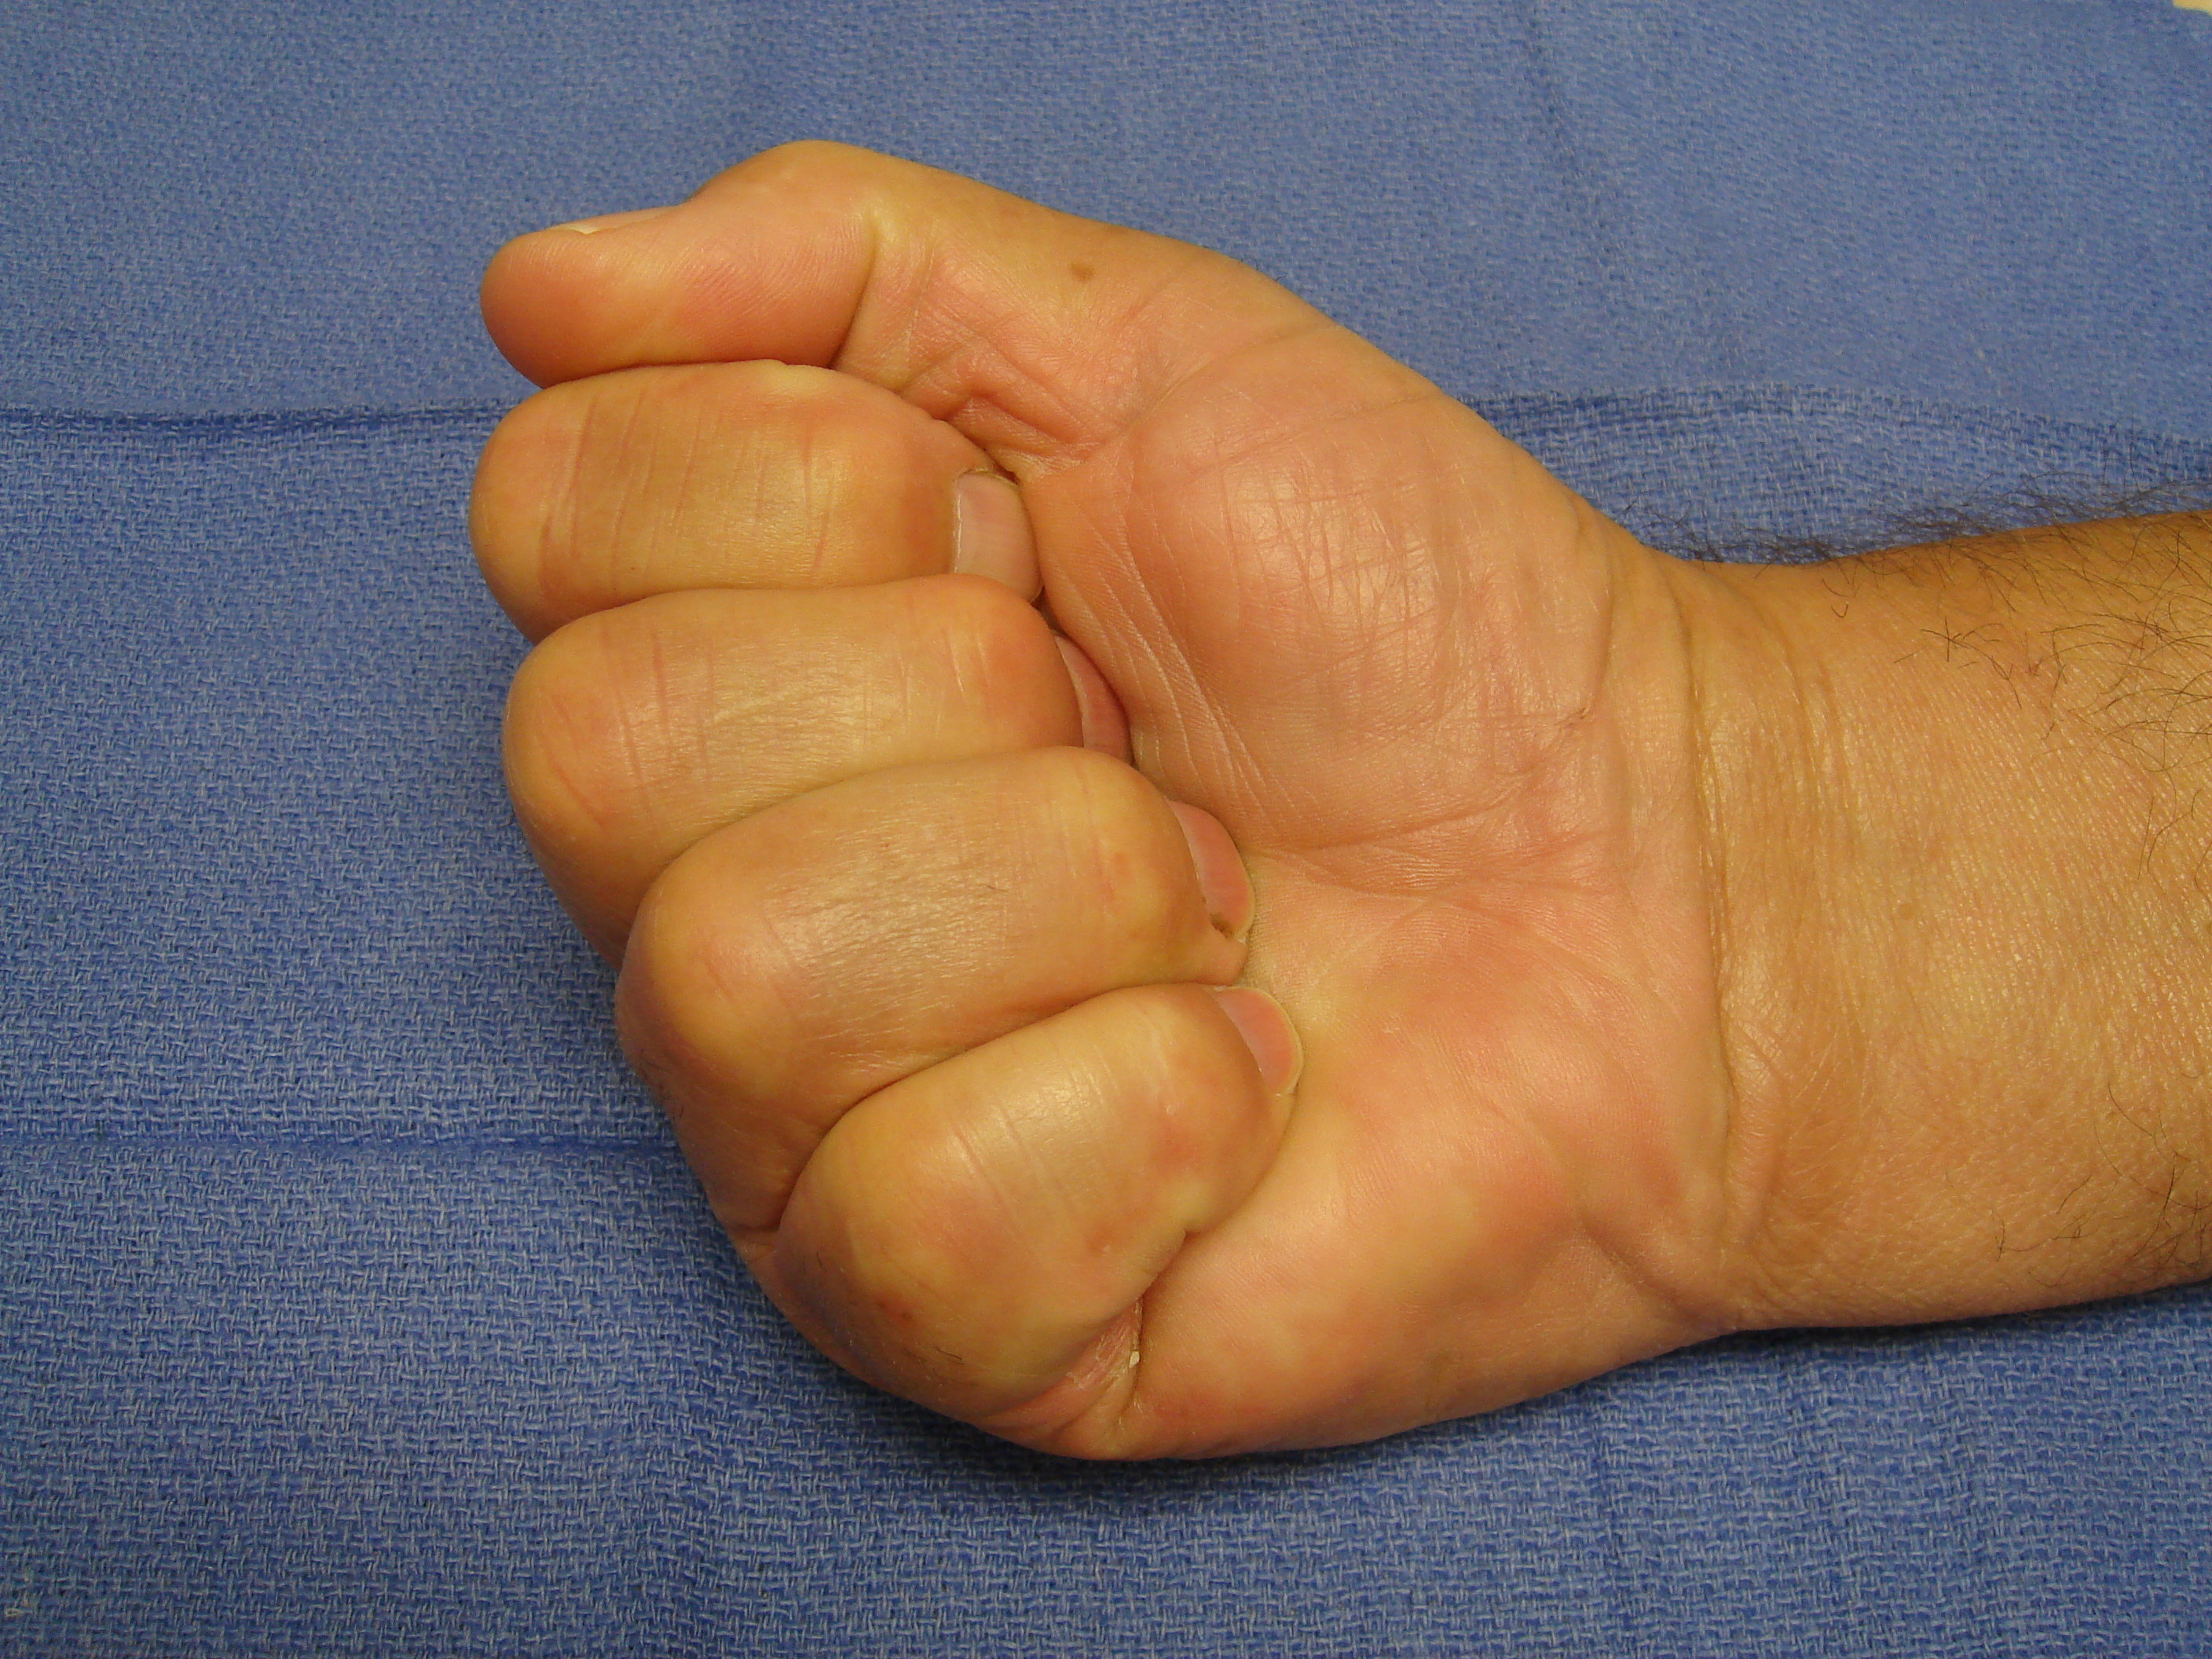 Figure 5d: Bruising and swelling have completely resolved and full motion is evident 6 weeks post-collagenase treatment.